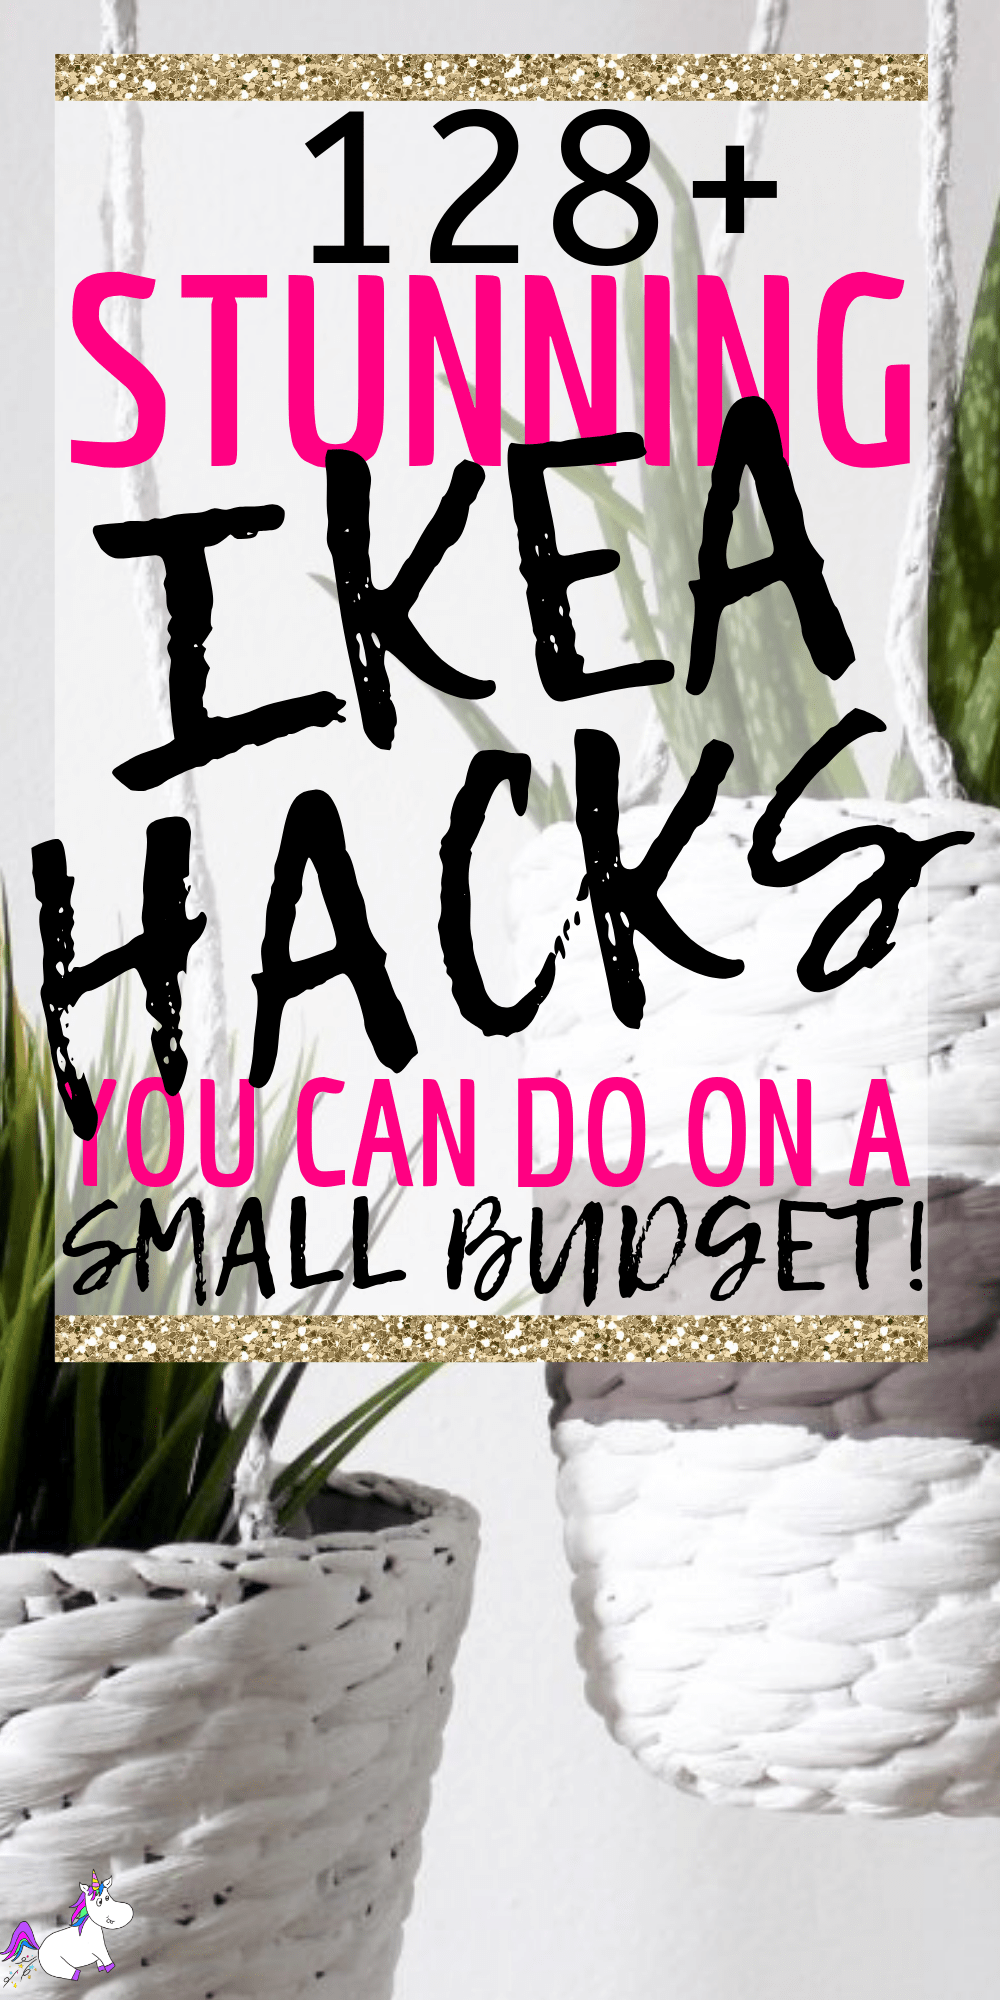 128+ Stunning Ikea Hacks For Every Room In Your Home For People Who Love DIY Home Decor On A Budget! #ikeahack #ikea #bestikeahacks #homedecoronabudget #diyhomedecor #diyhacks #creativehomedecor